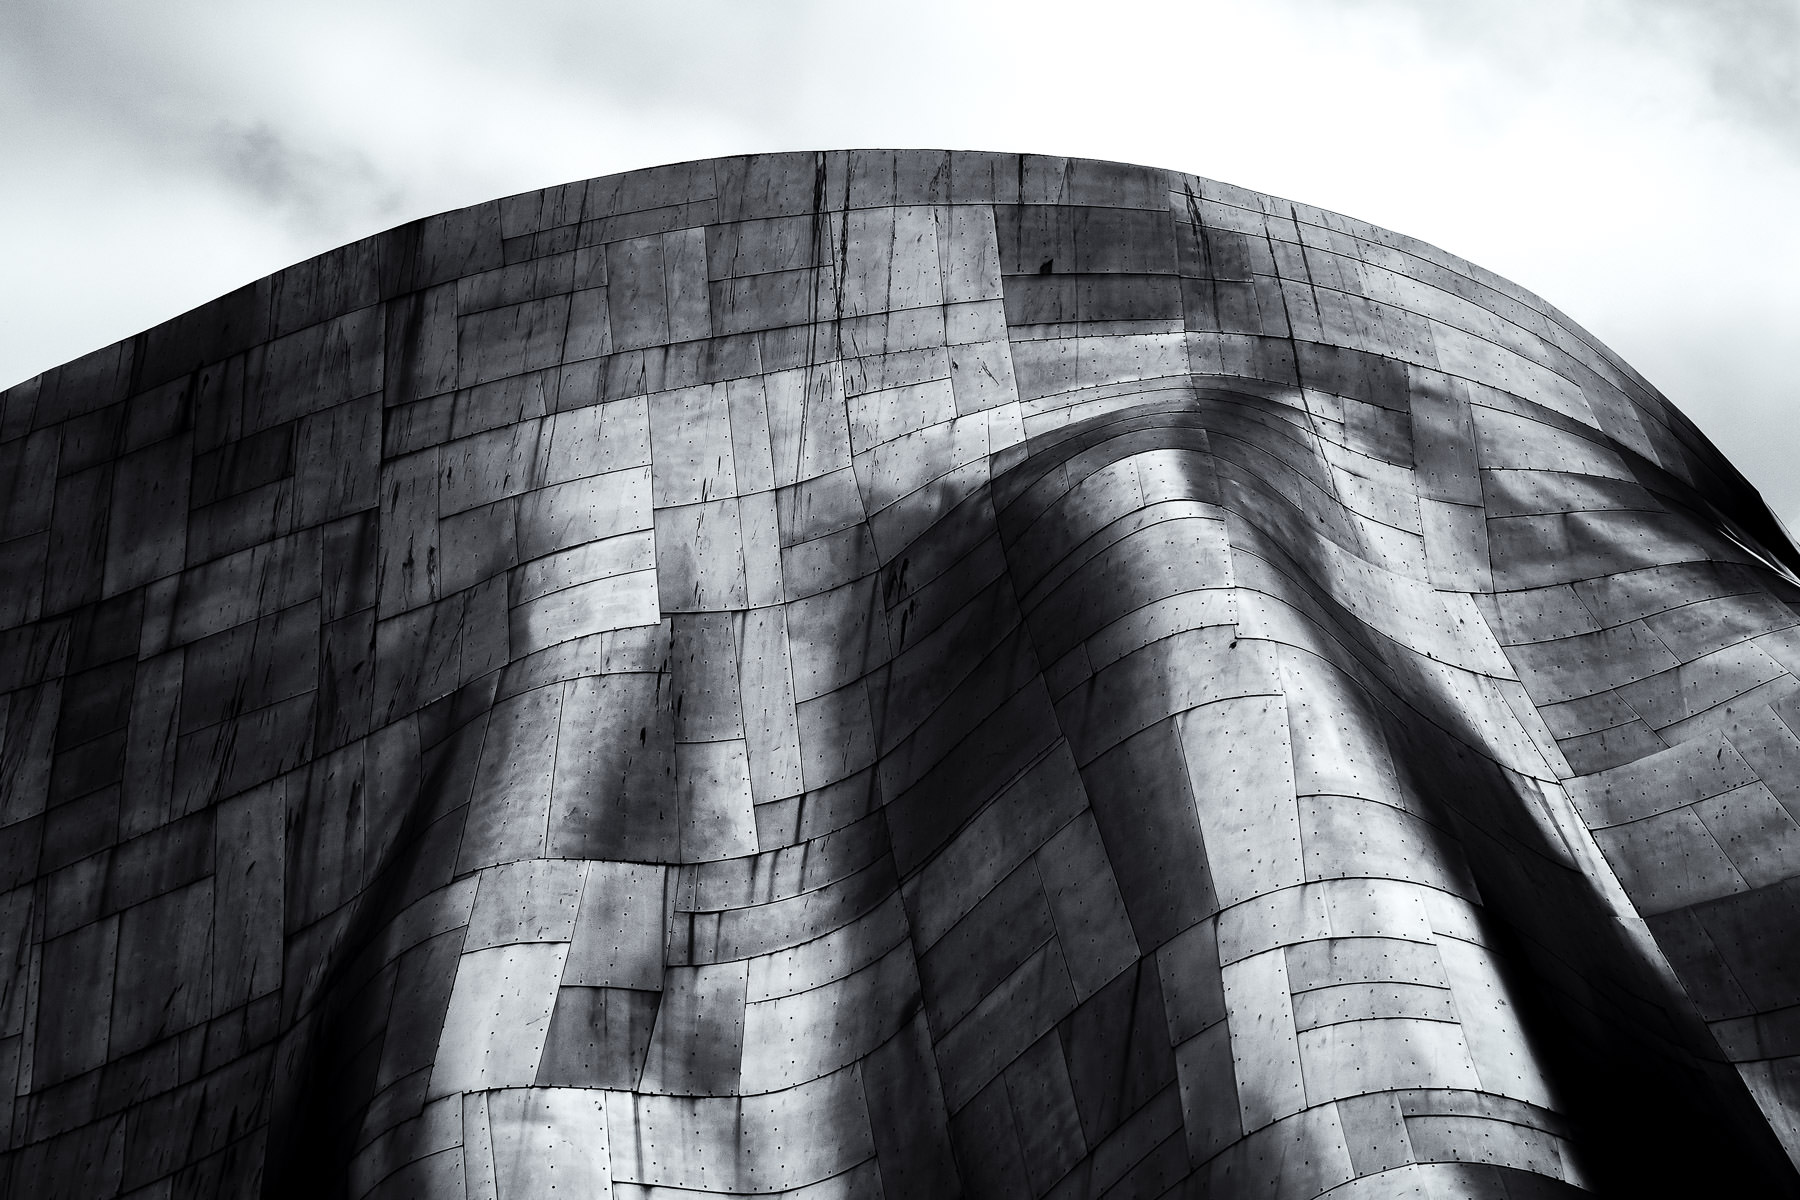 Architectural detail of architecture Frank Gehry's Museum of Pop Culture in Seattle.